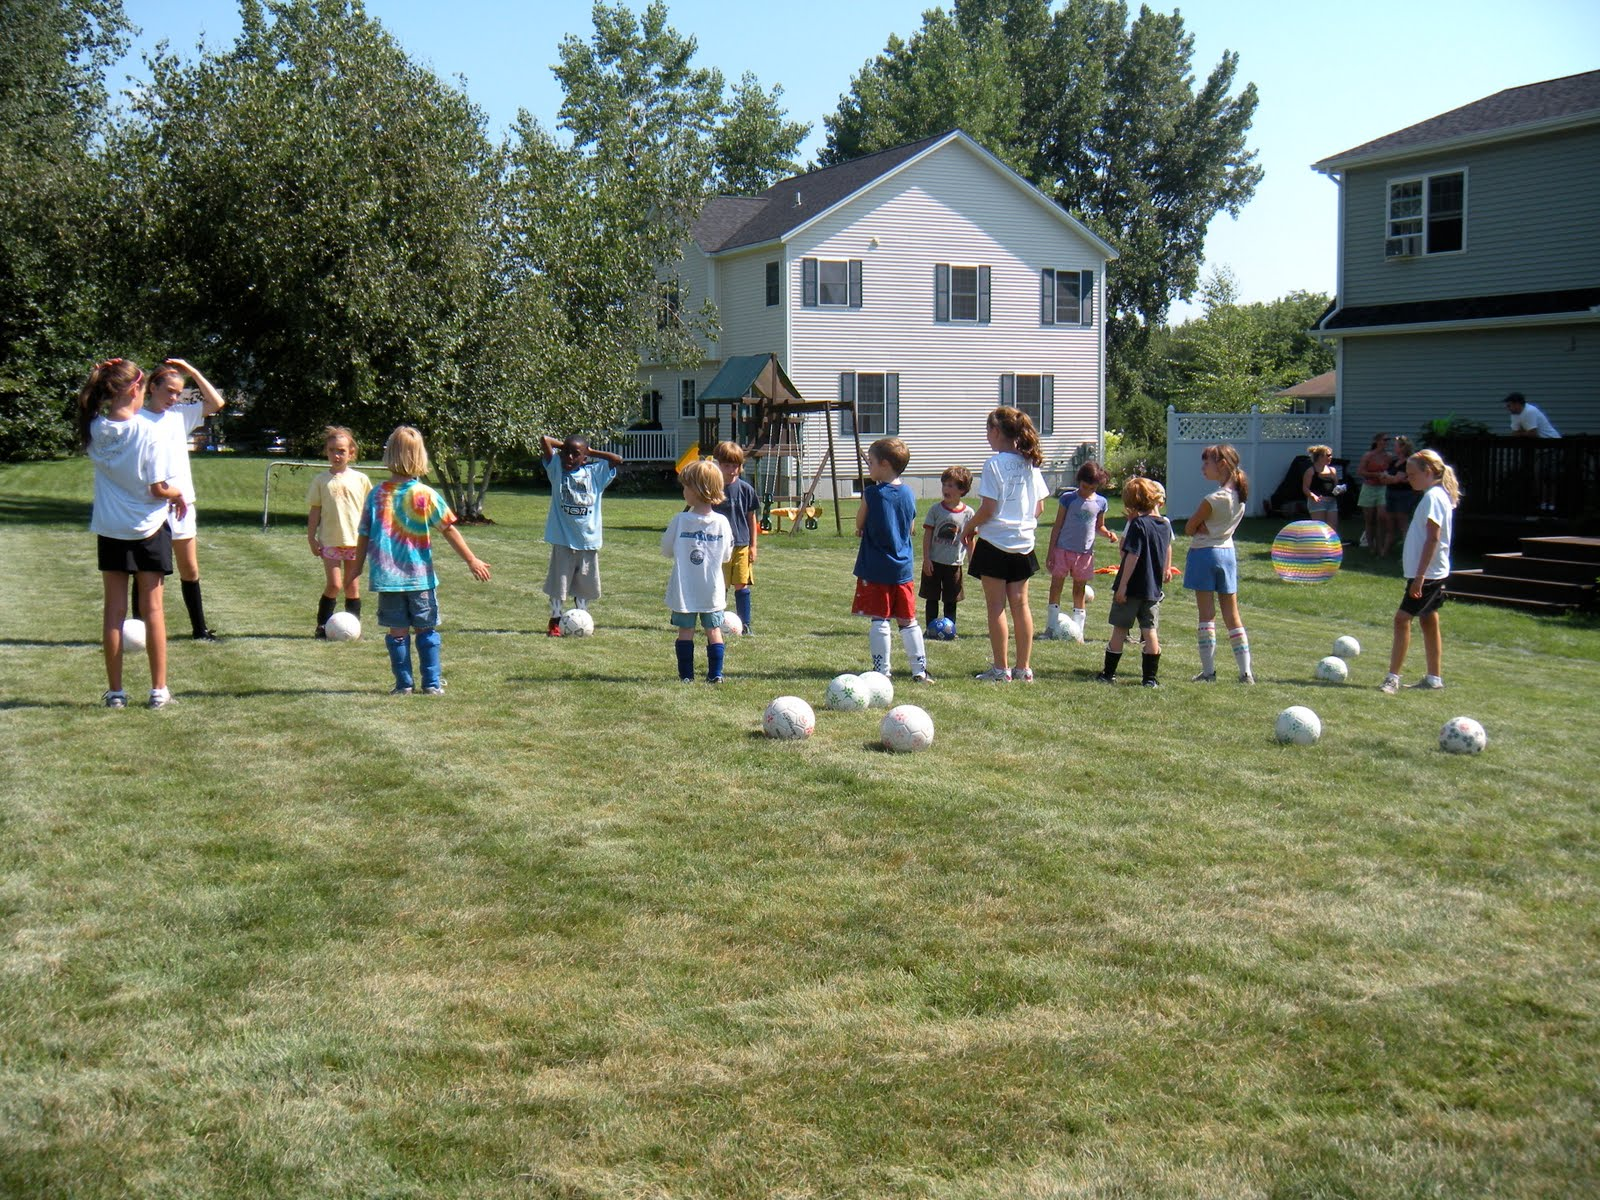 Soccer Field In My Backyard : Backyard Soccer Camp July 2010